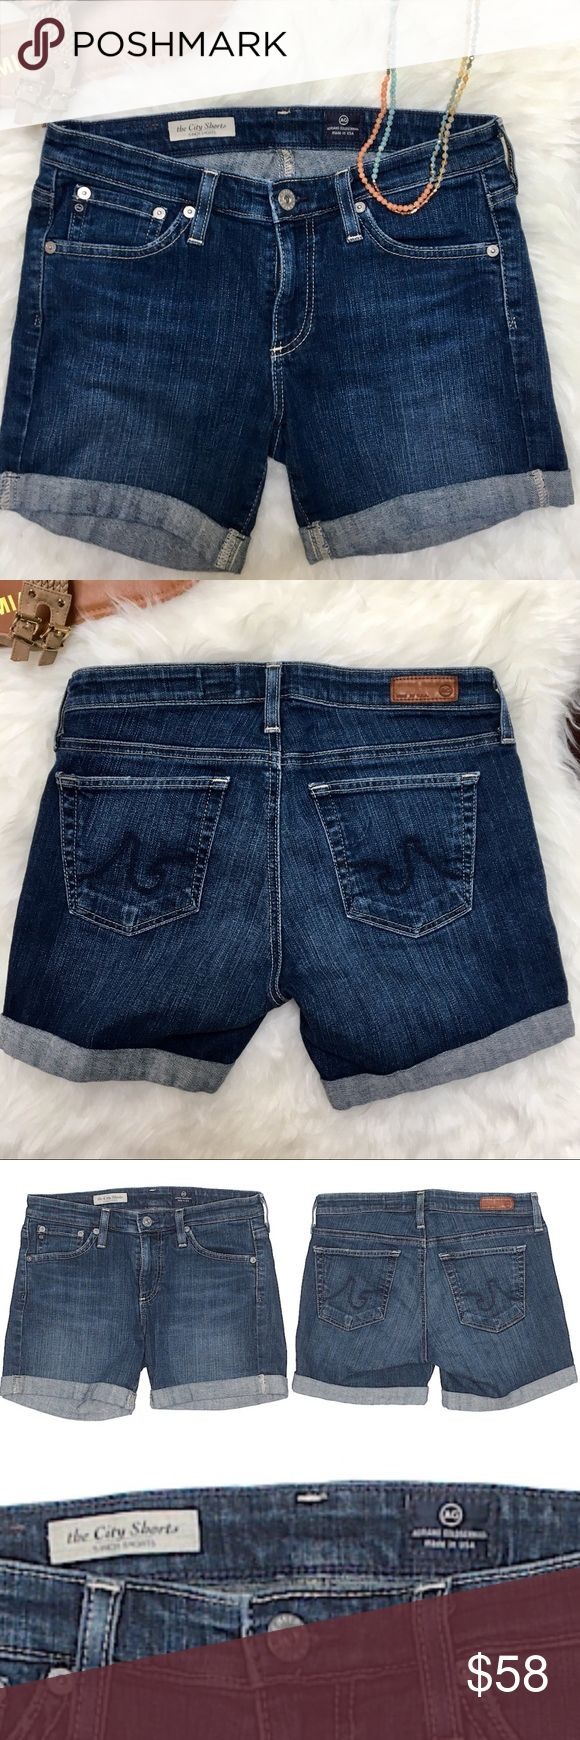 """AG Cuffed Jean City Shorts Sz 27 AG Cuffed Jean City Shorts Sz 27  Low Rise Medium Wash Denim, cuff is sewn in place, denim purposely faded slightly with whiskers on top of thigh  5"""" Inseam, 8"""" Rise  EUC, Looks new; no pulls, rips, stains, fraying Ag Adriano Goldschmied Shorts Jean Shorts"""